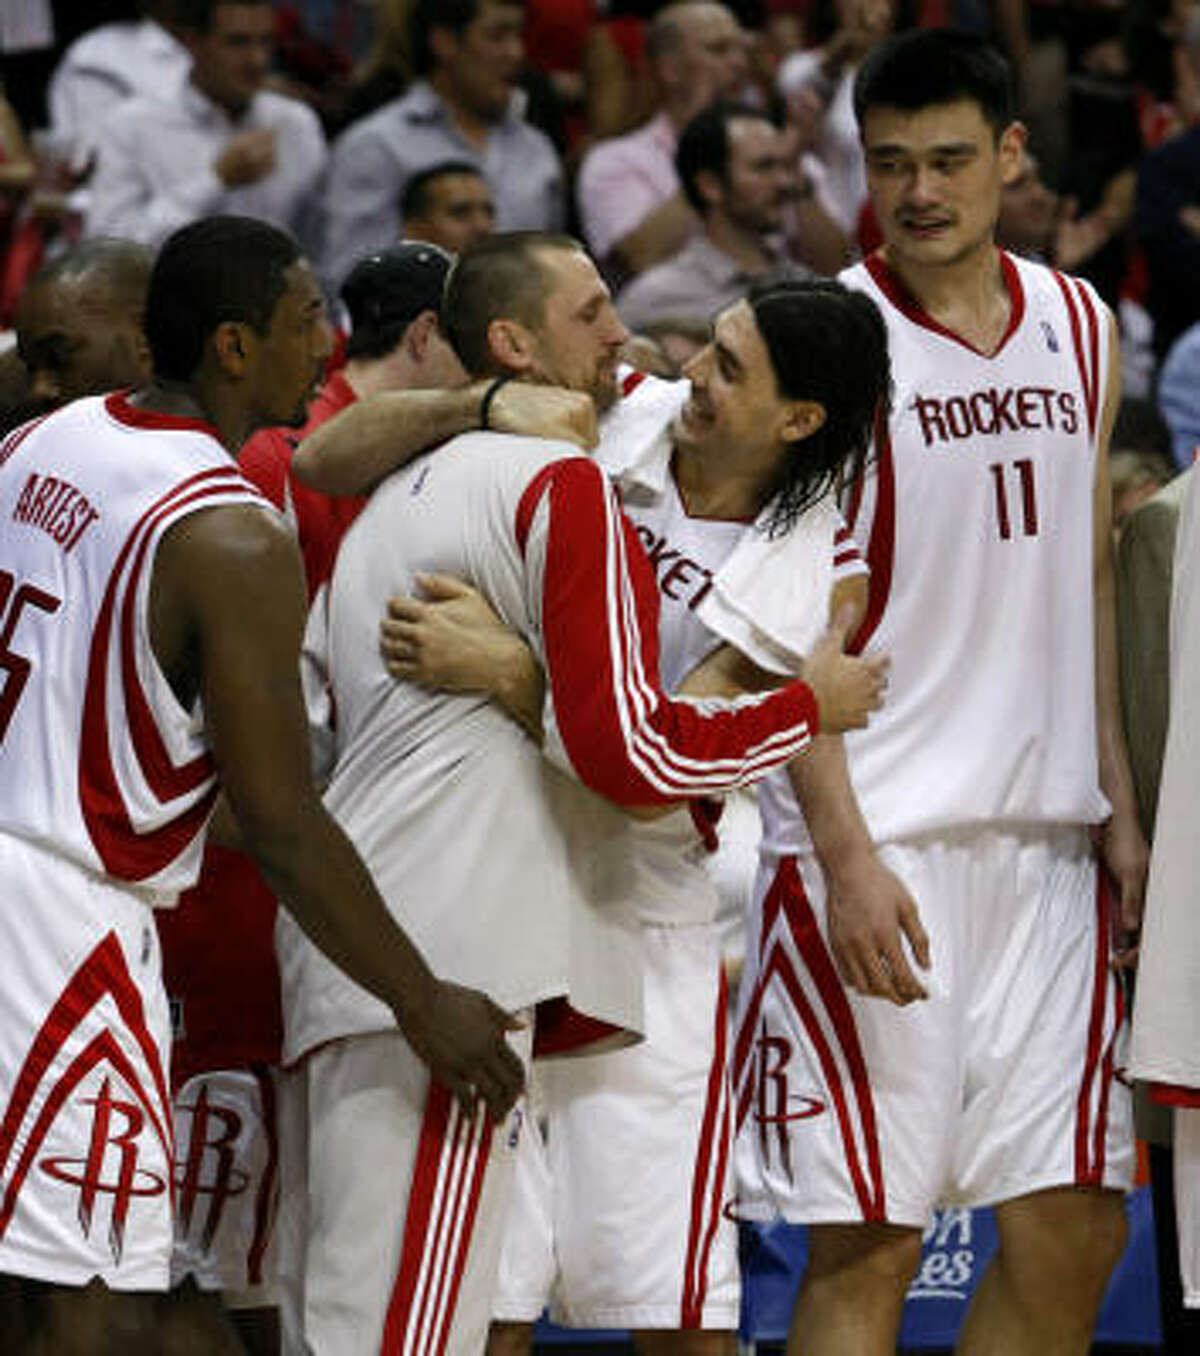 The euphoria of the first-round win over Portland may still be on the minds of Rockets players, from left, Ron Artest, Brent Barry, Luis Scola and Yao Ming, but they know they have their work cut out for them starting Monday in Los Angeles.